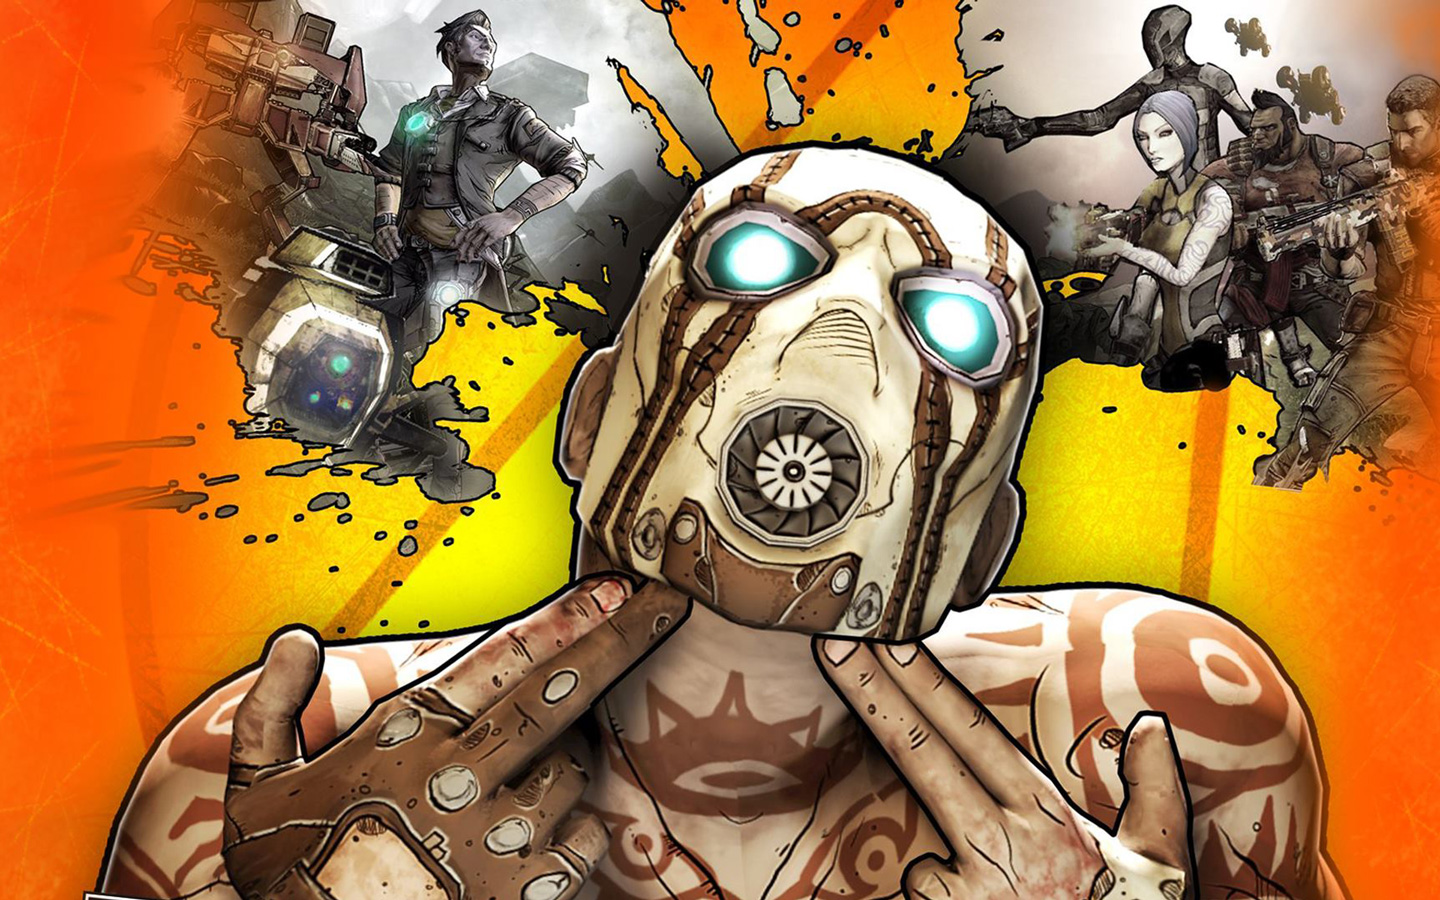 My thoughts on Borderlands 2 so far…..Does it live up to the hype?